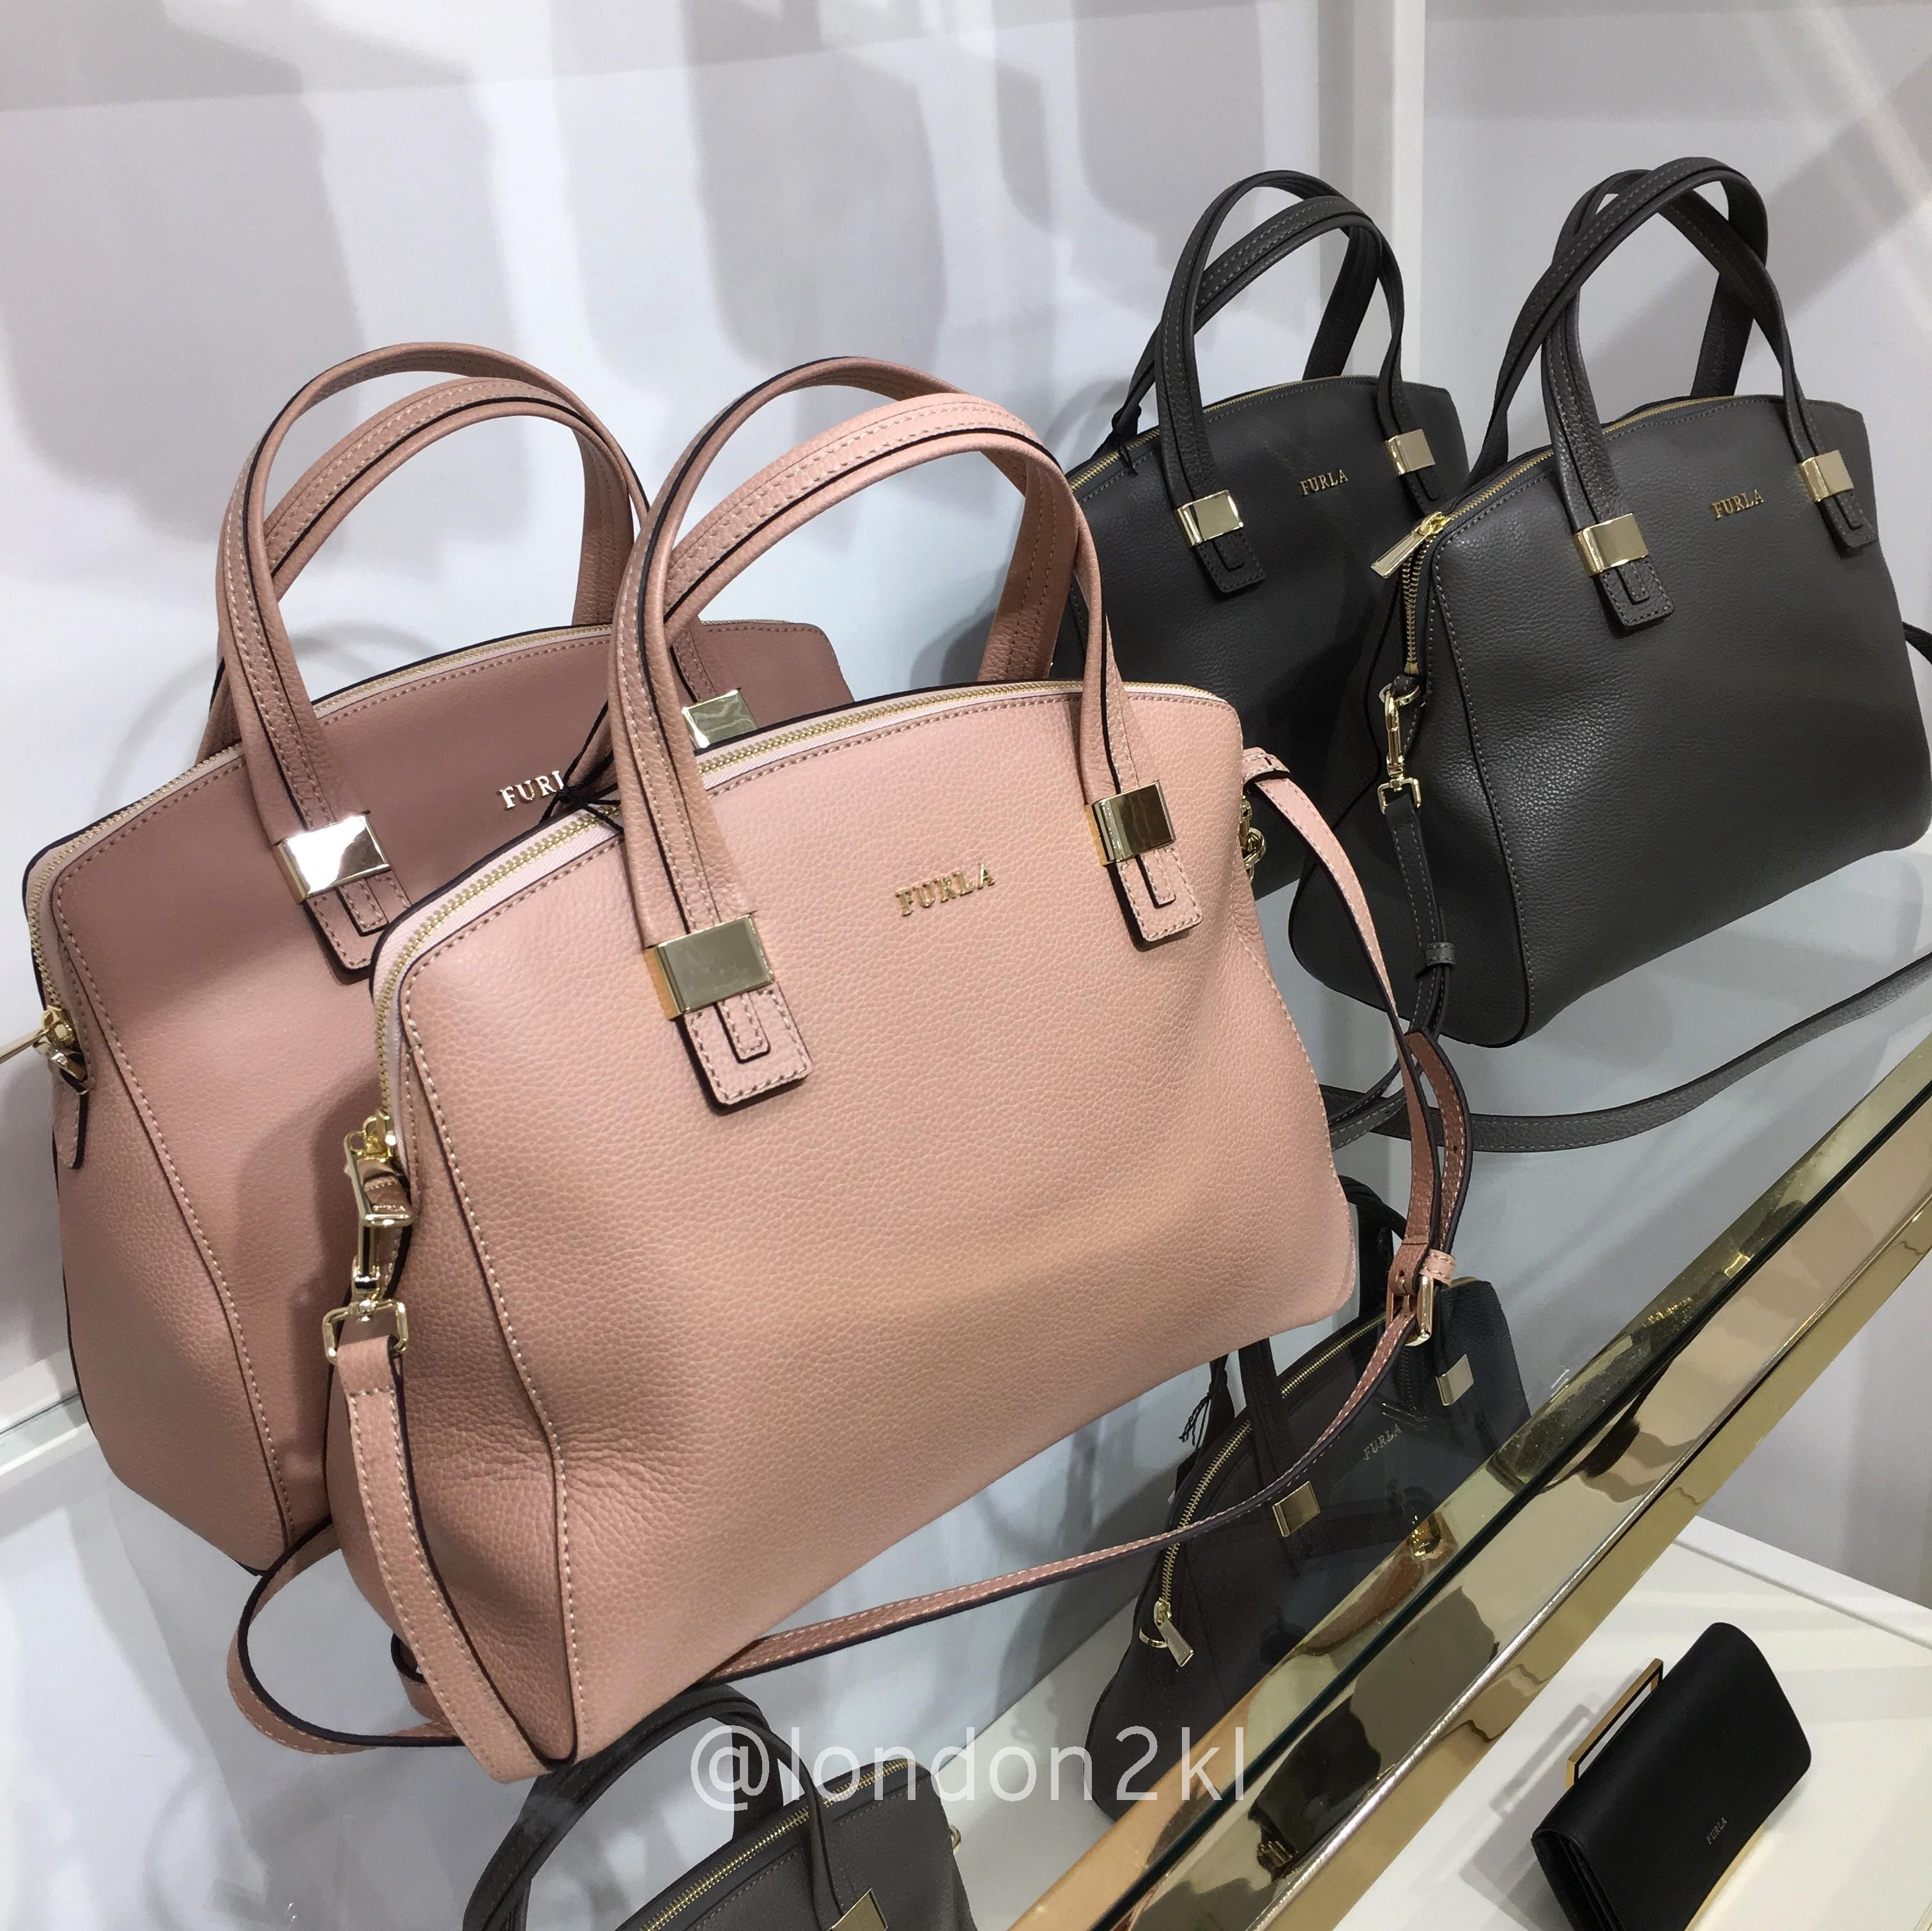 We Are Heading To Bicester Village On Friday 10th February 2017 Furla Amelie Rm1 300 It Whats Me 44 7535 715 239 For Orders Now